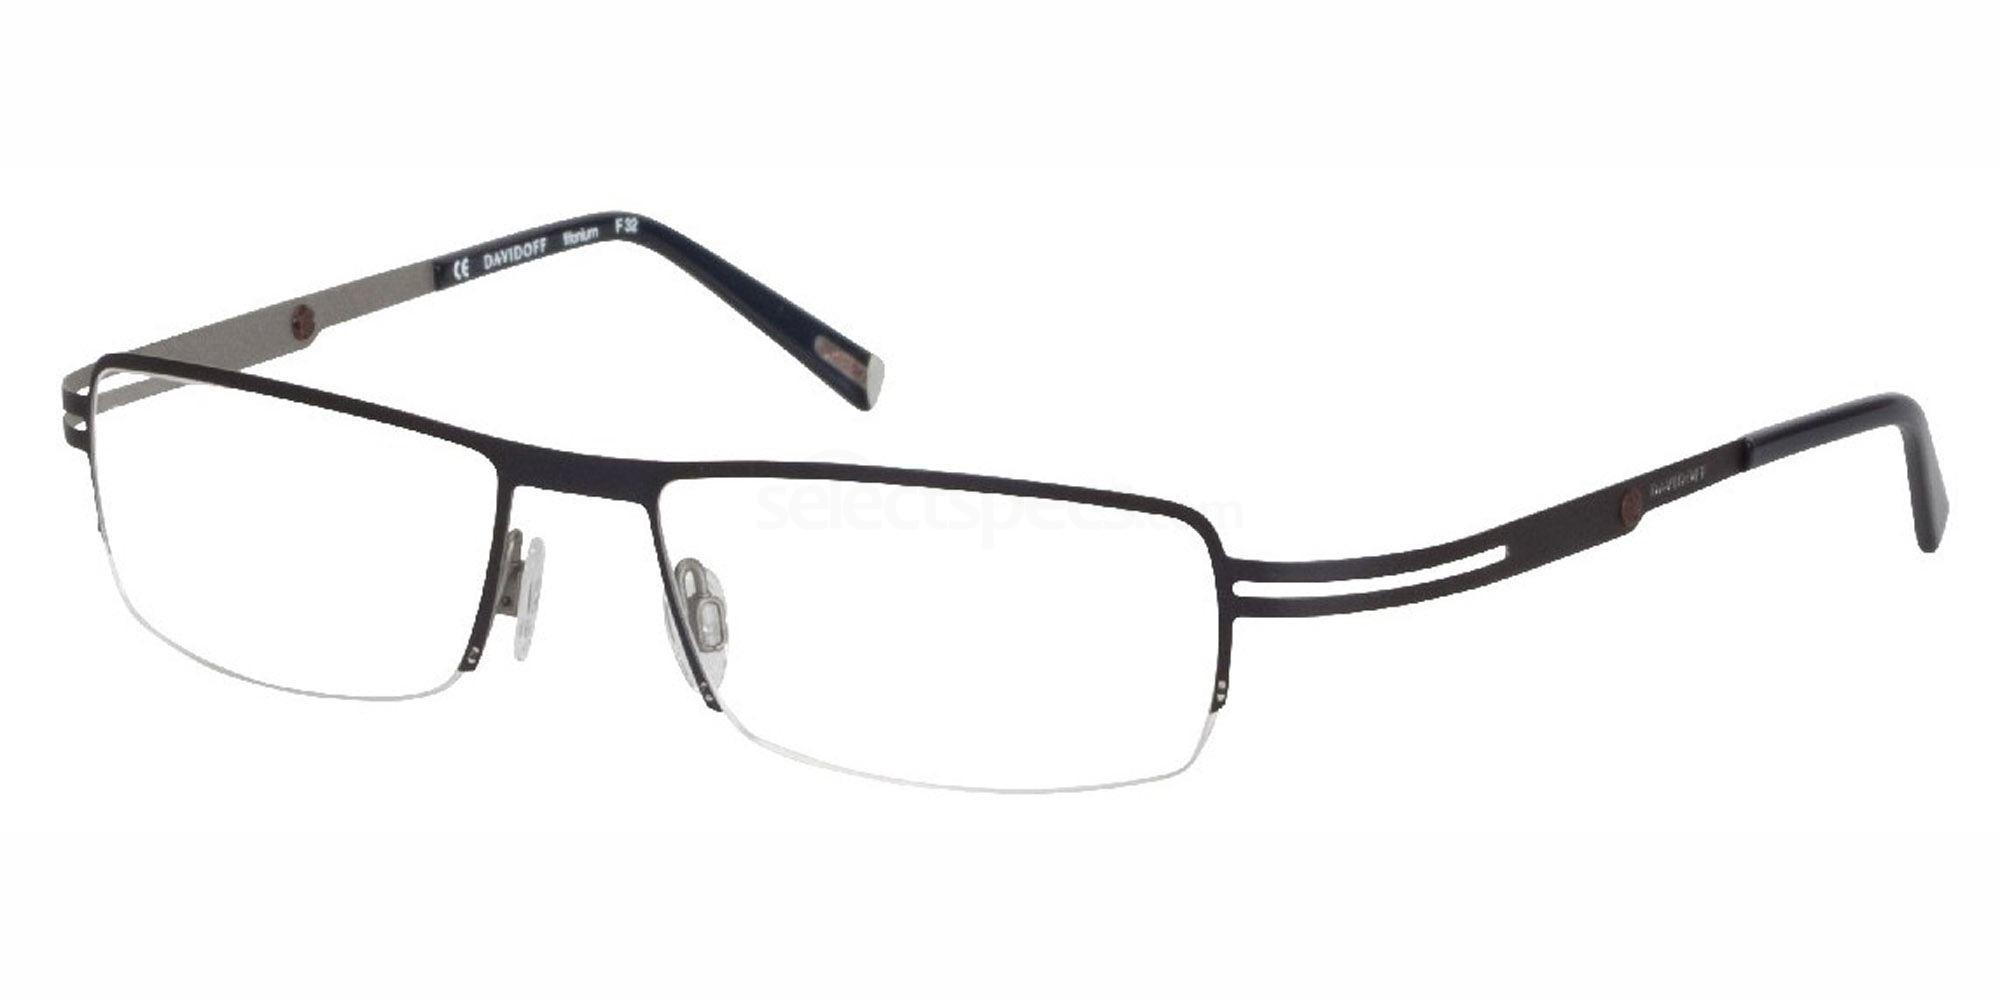 508 95085 Glasses, DAVIDOFF Eyewear